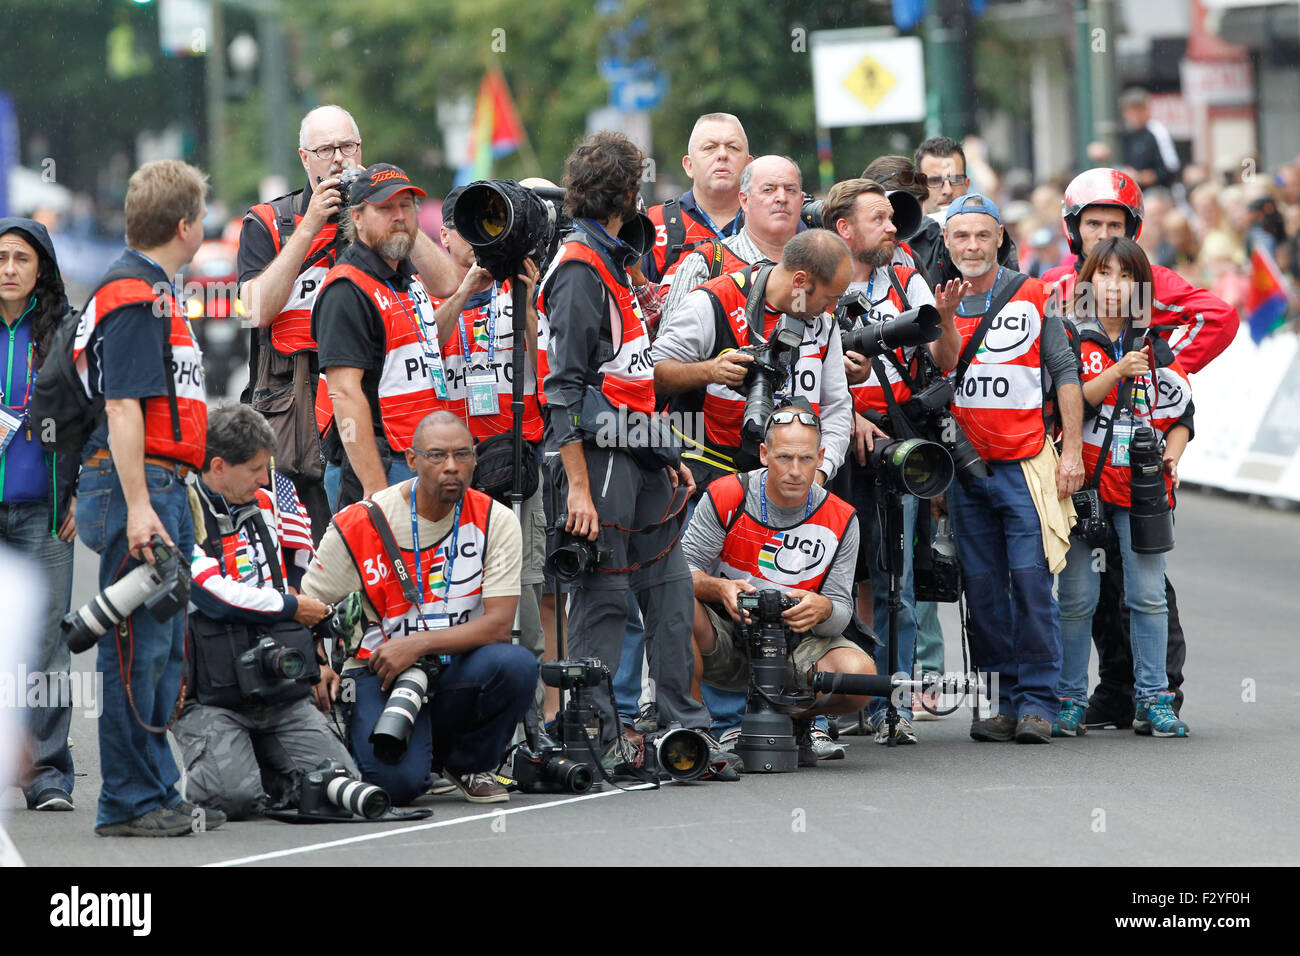 RICHMOND, VIRGINIA, 25 Sept., 2015. Photographers line up to photograph the finish of the UCI Road World Championships - Stock Image